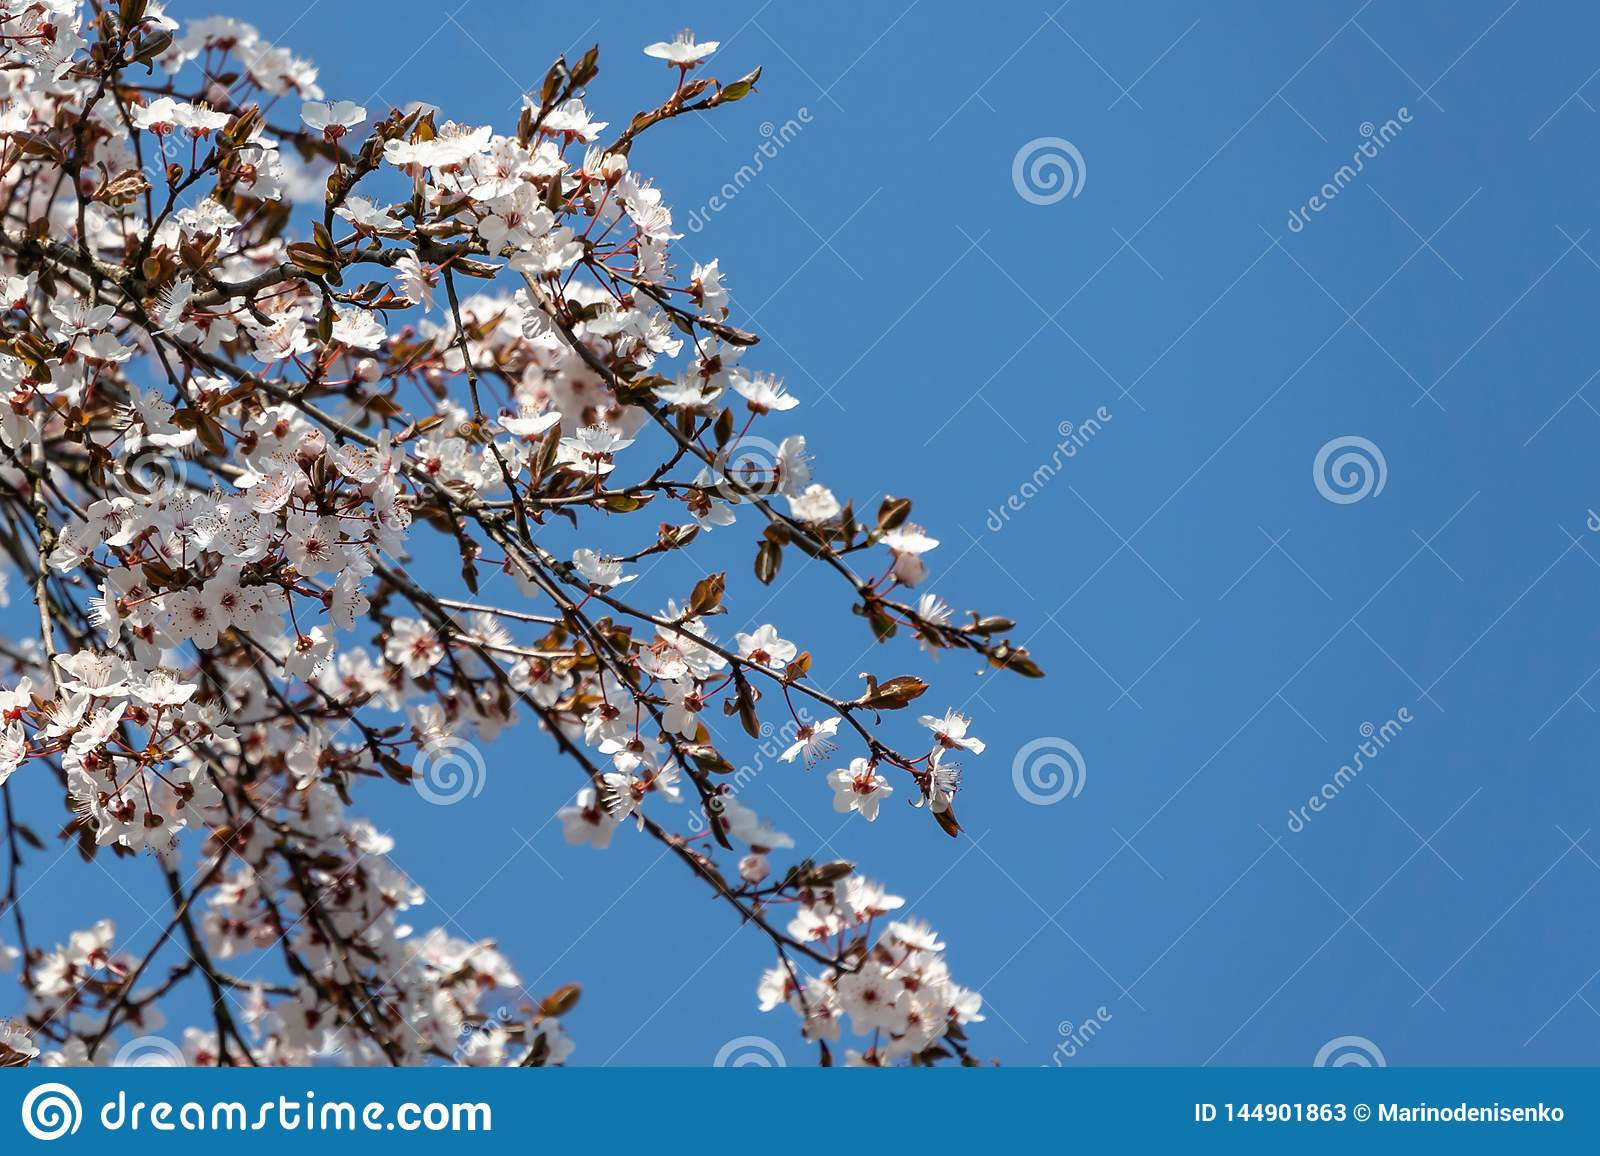 White cherry plum flowers blossom against background of blue sky. A lot of white flowers in sunny spring day. Selective focus